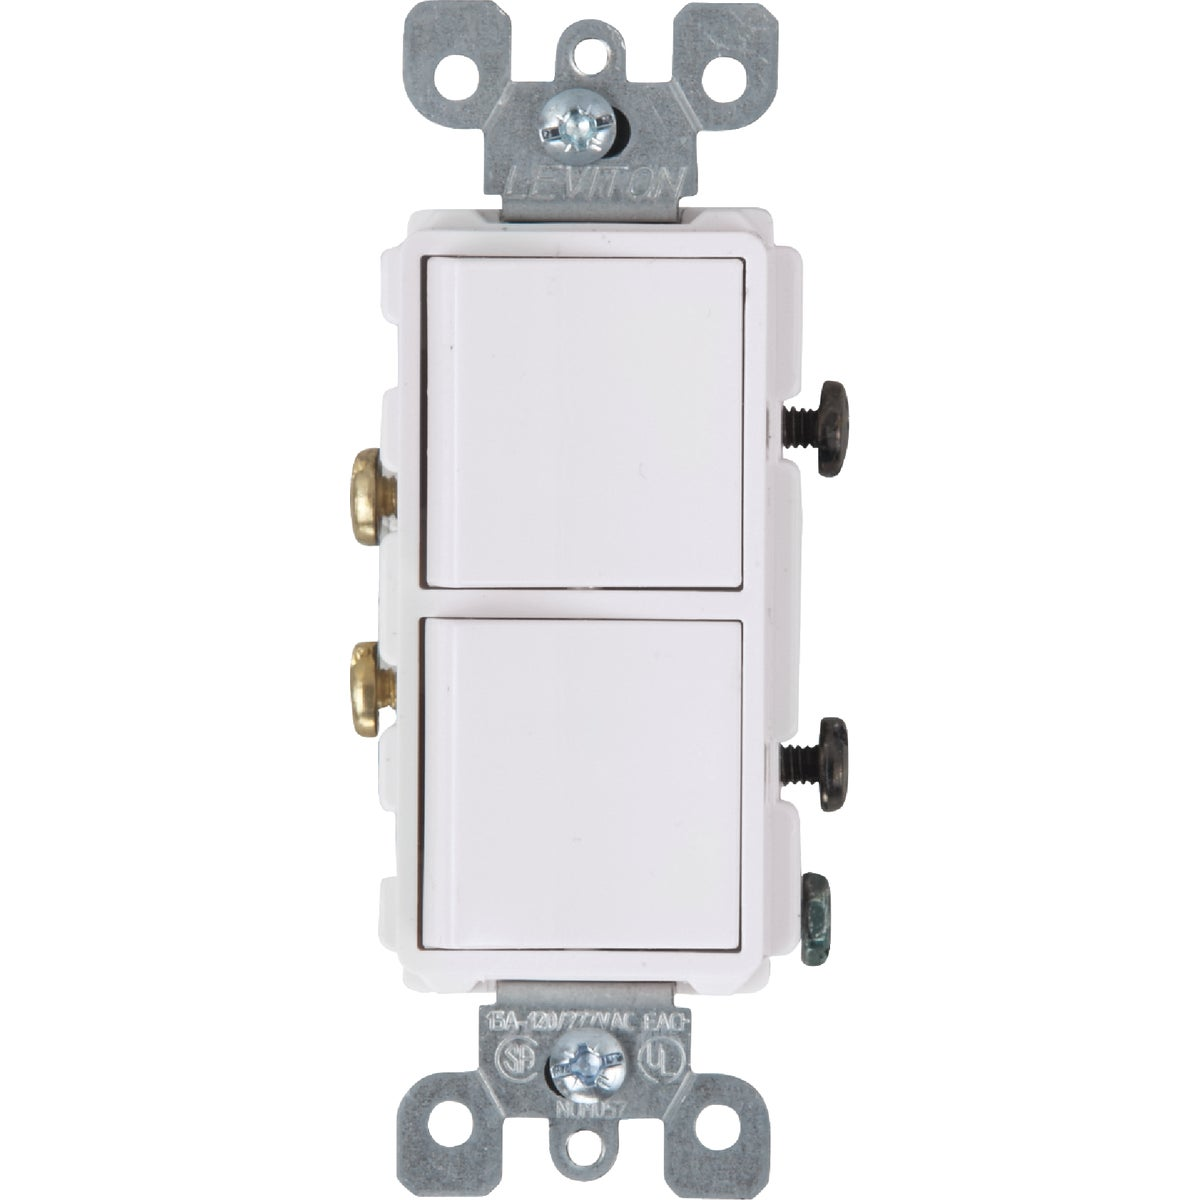 WHT DUPLEX SWITCH